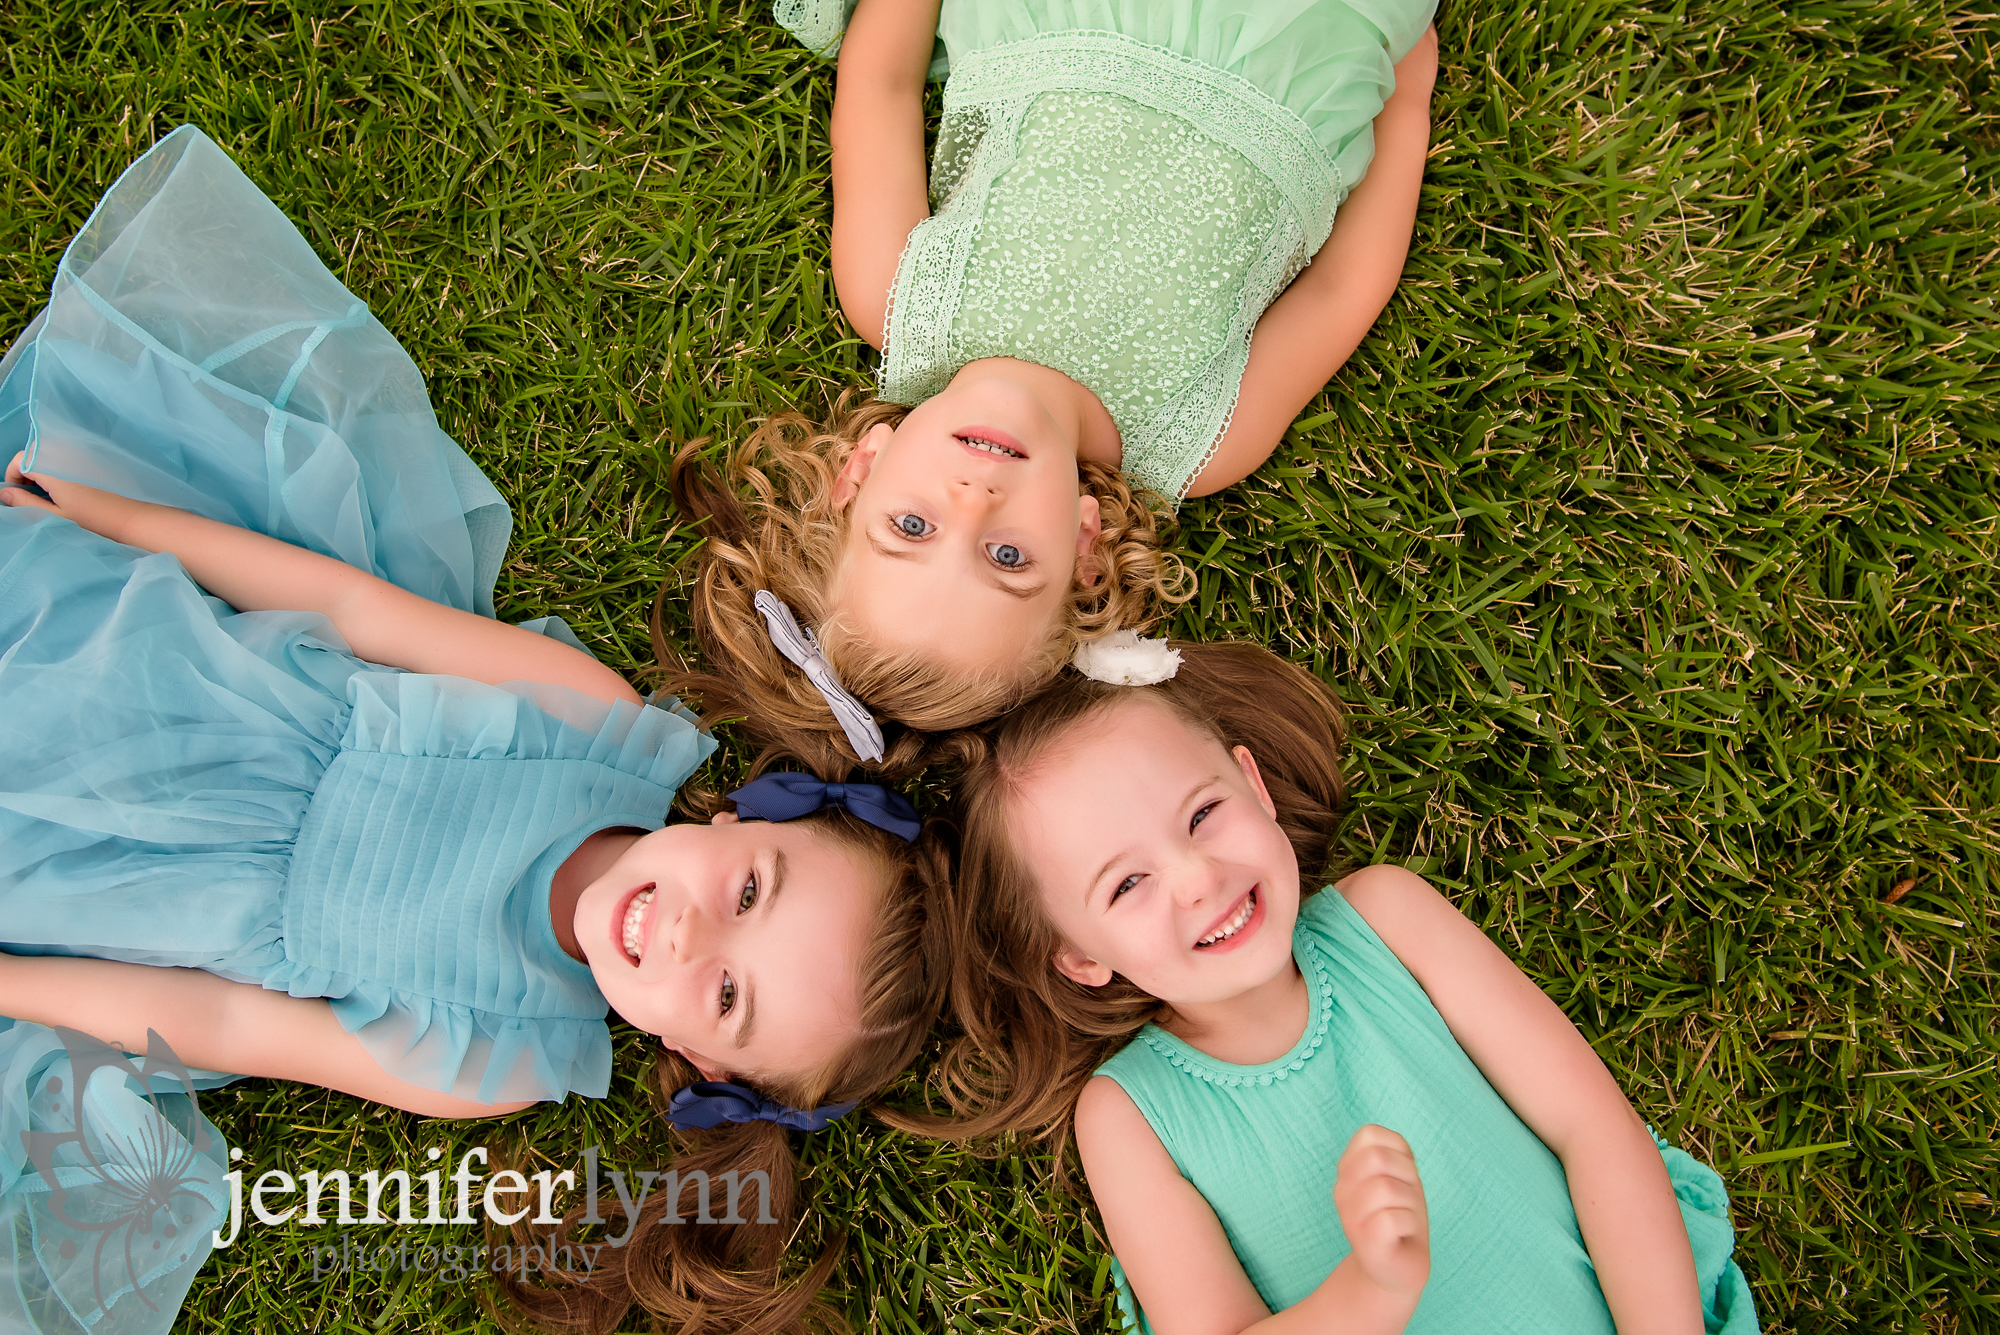 Girl cousins laying on grass looking up